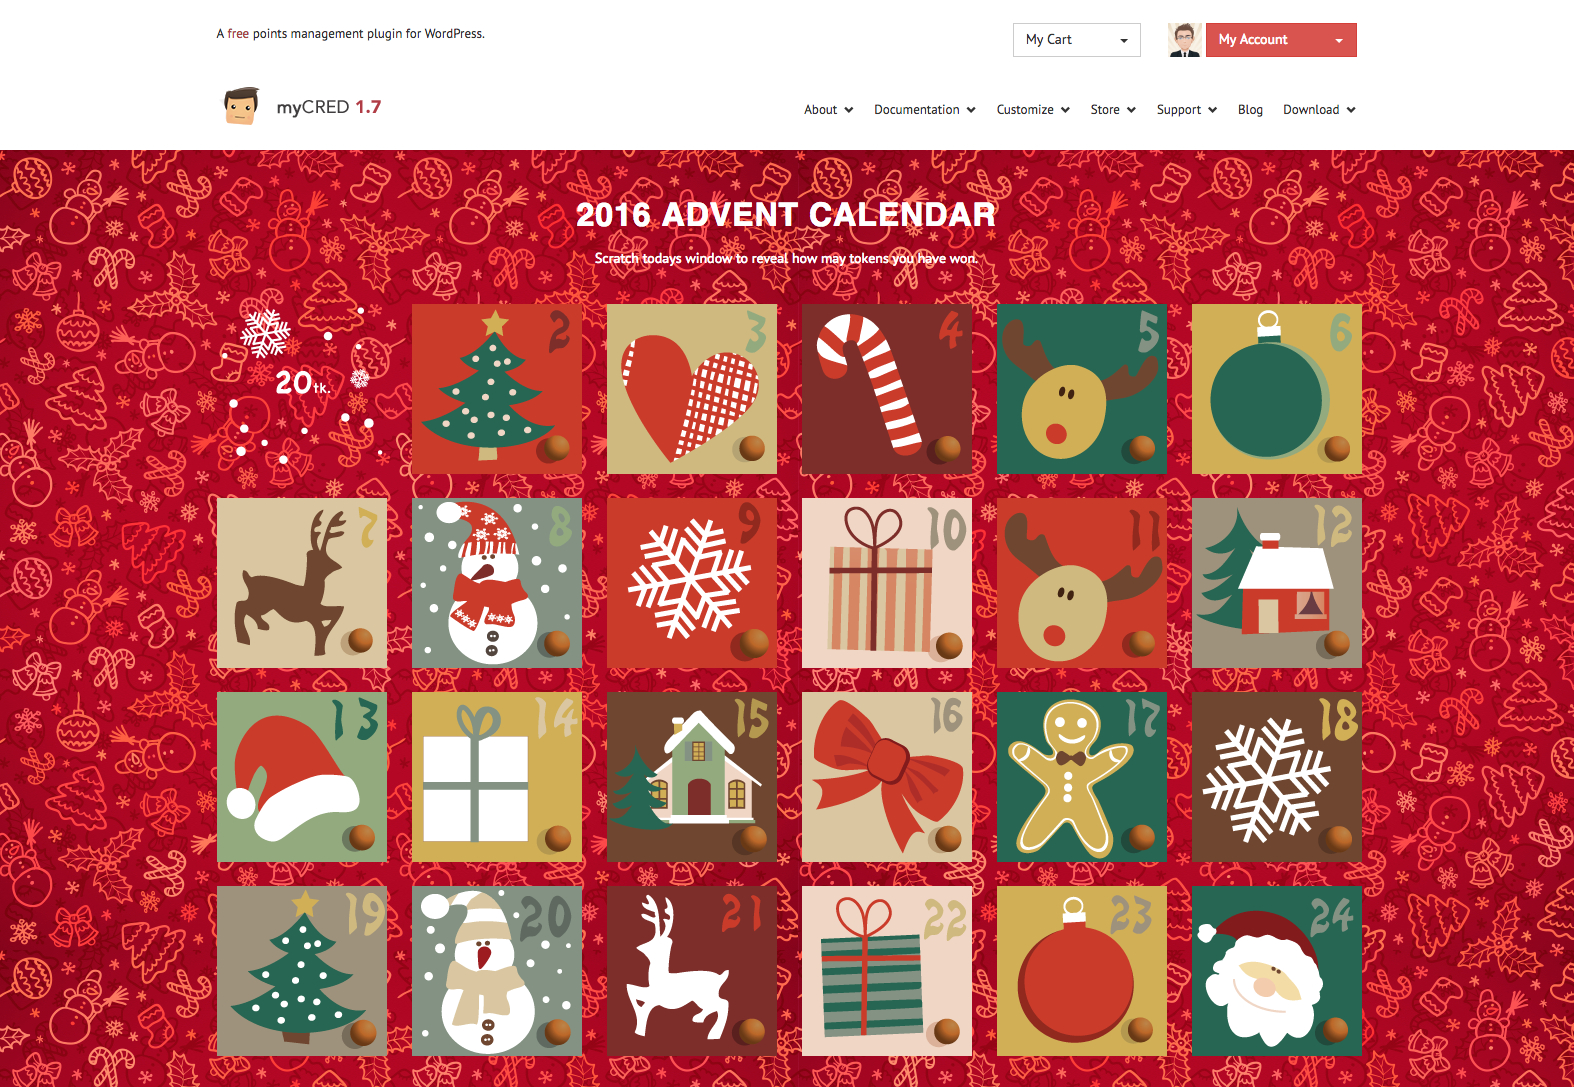 2016 Advent Calendar – Mycred #333306  Png Images  Pngio for Advent Calendar WordPress Plugin